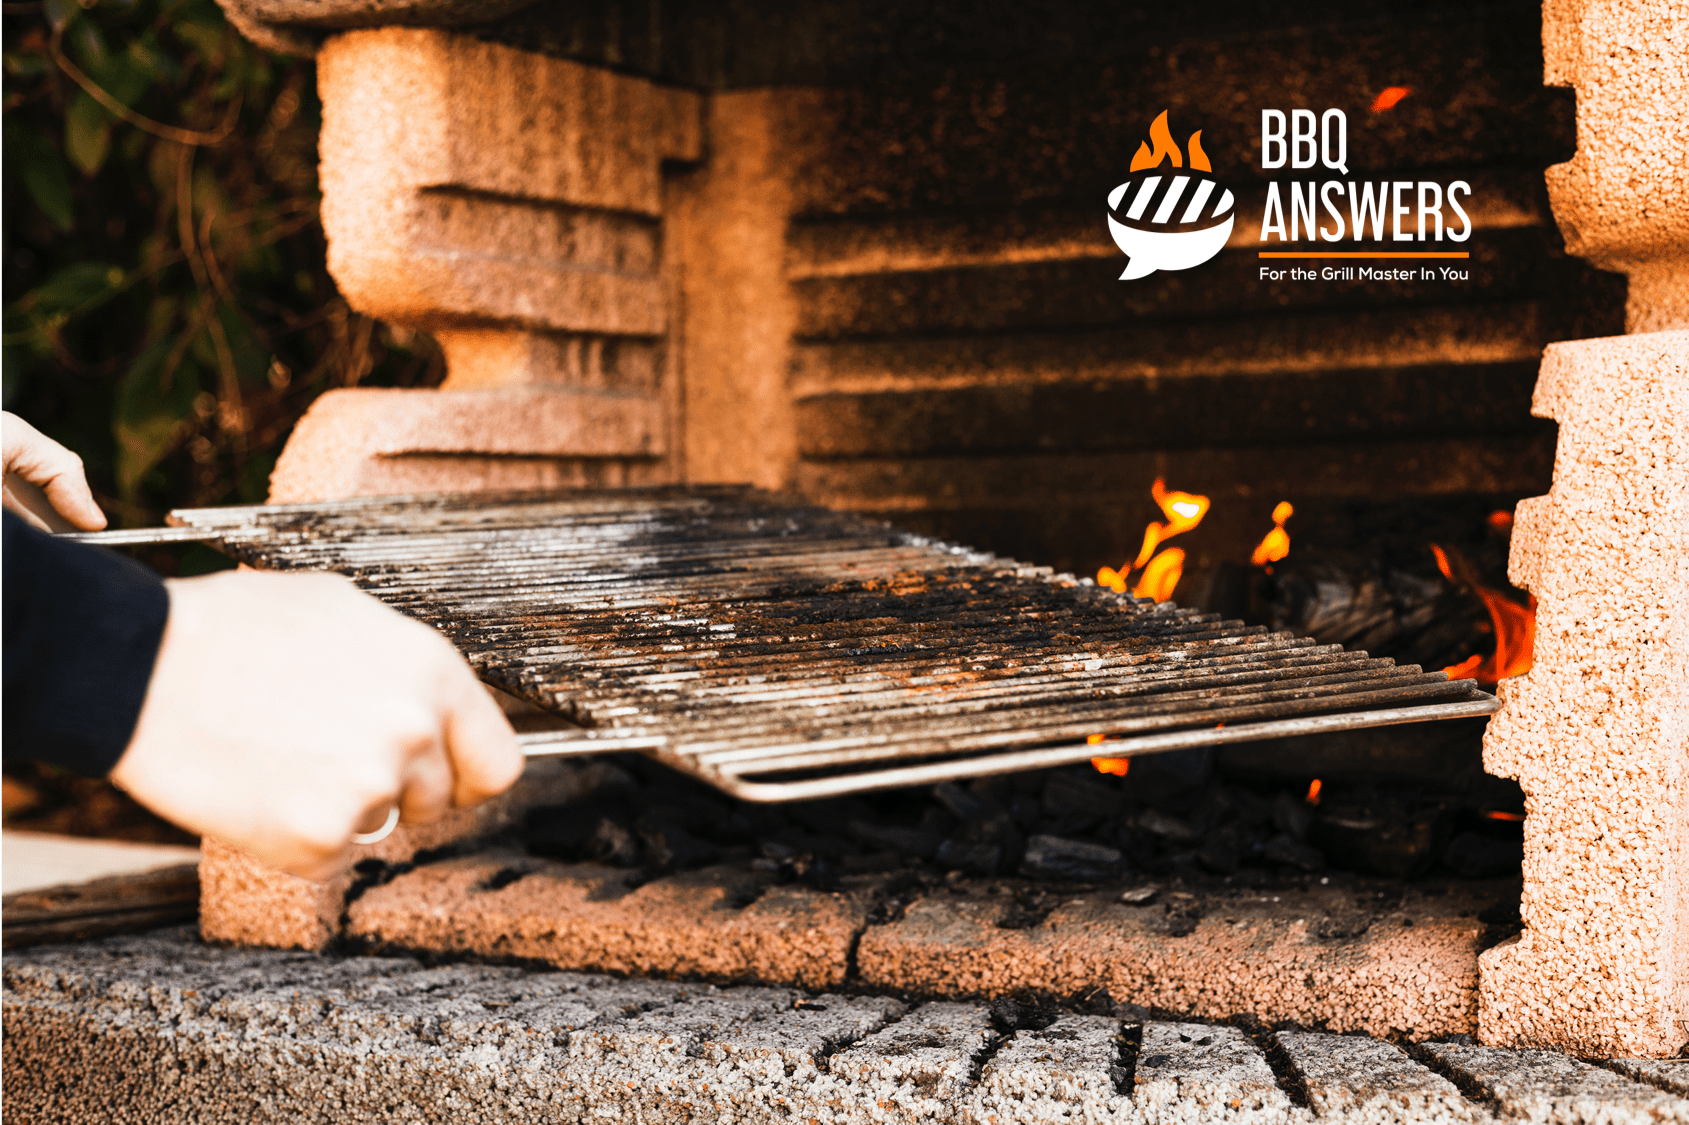 Why Stainless Steel BBQ Grill Rust? | BBQanswers